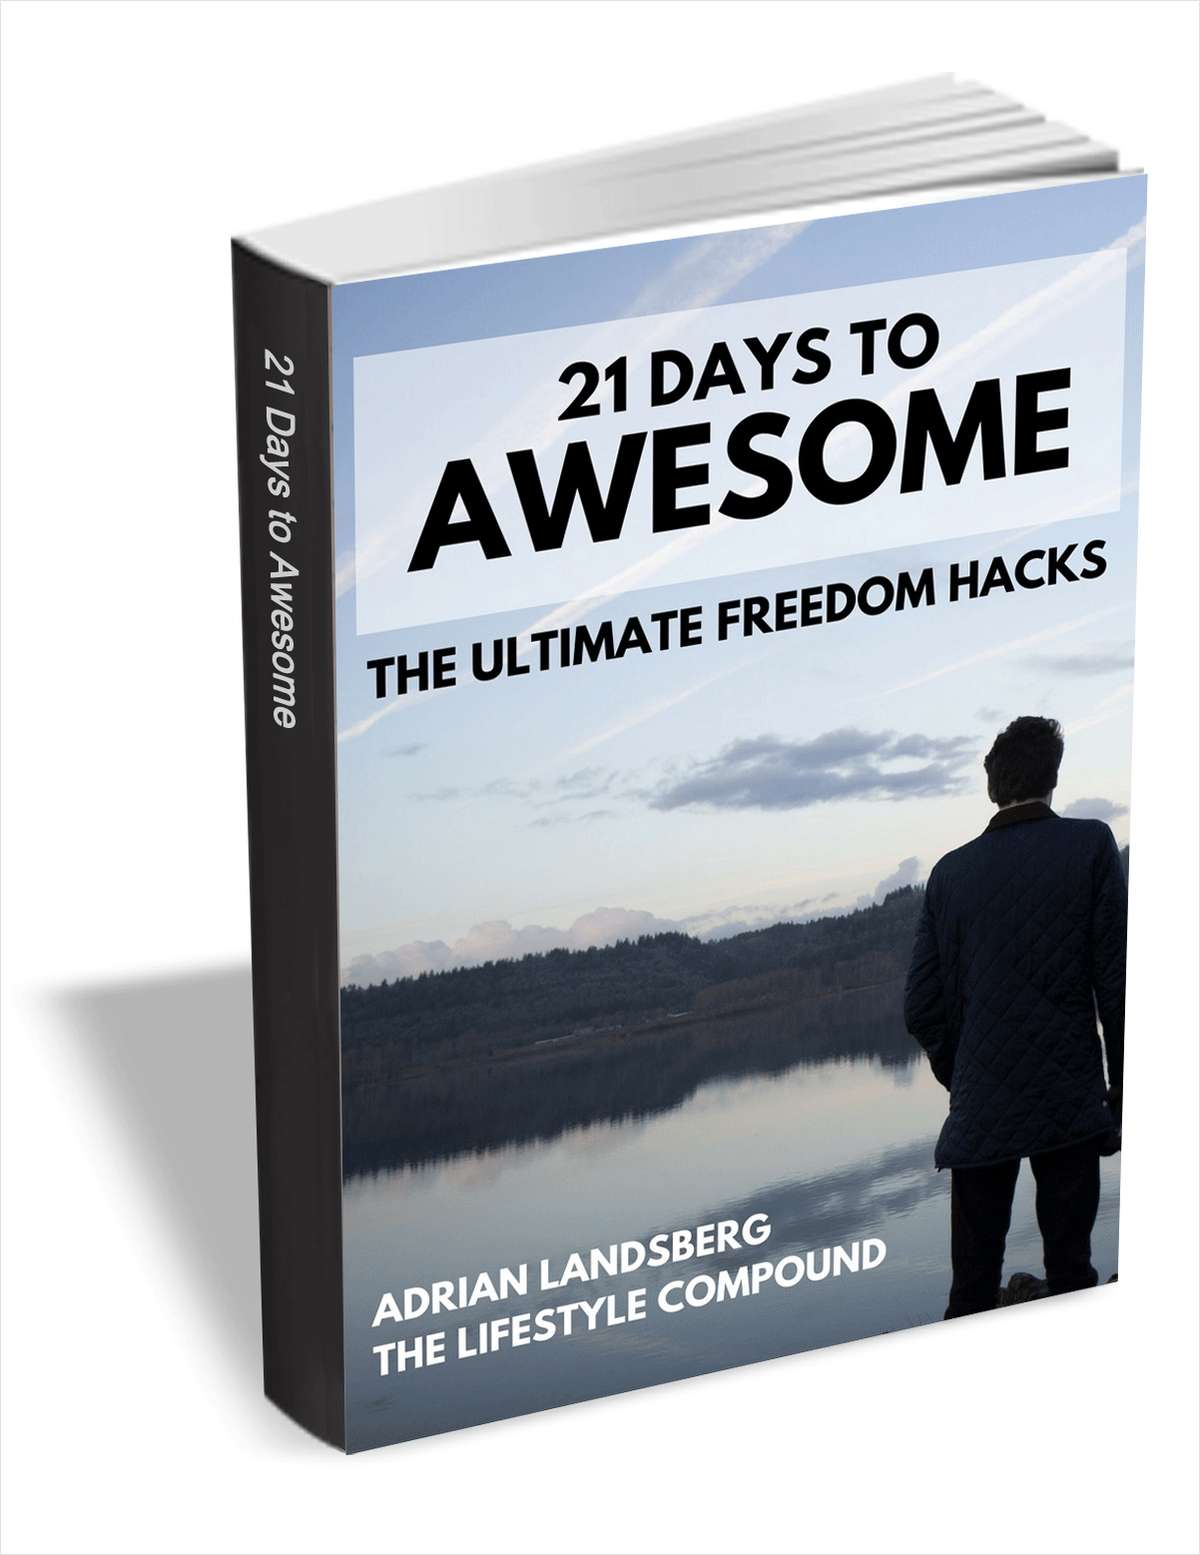 21 Days to Awesome - The Ultimate Freedom Hacks